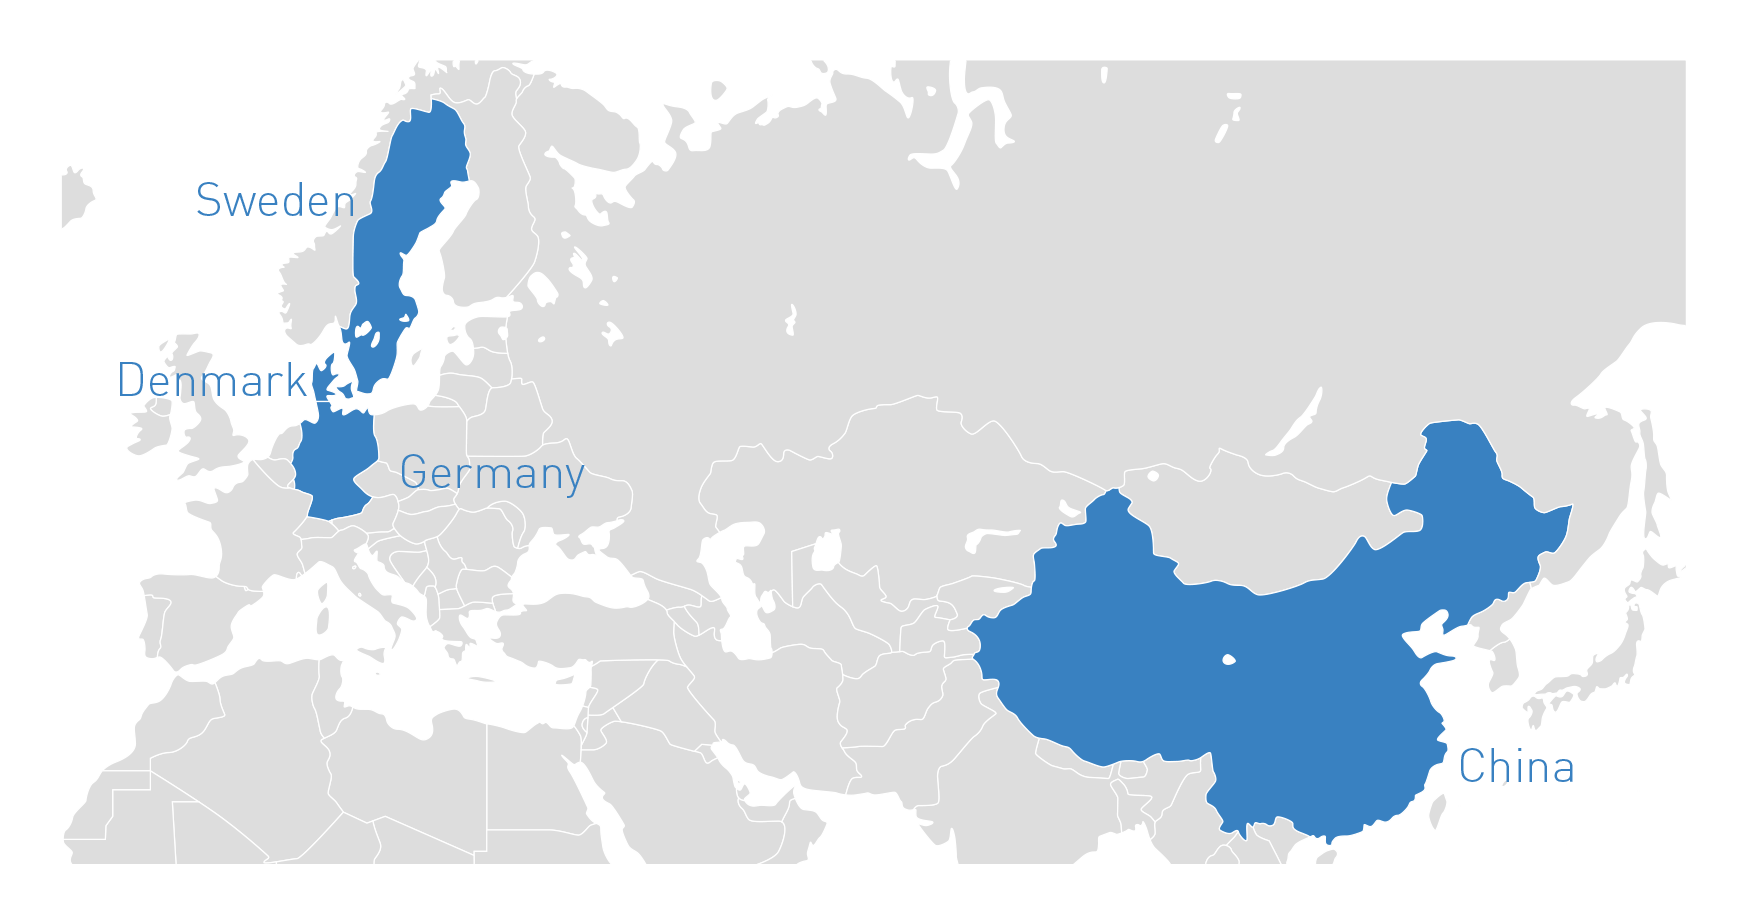 Portion of the world map highlighting Sweden, Denmark, German and China.